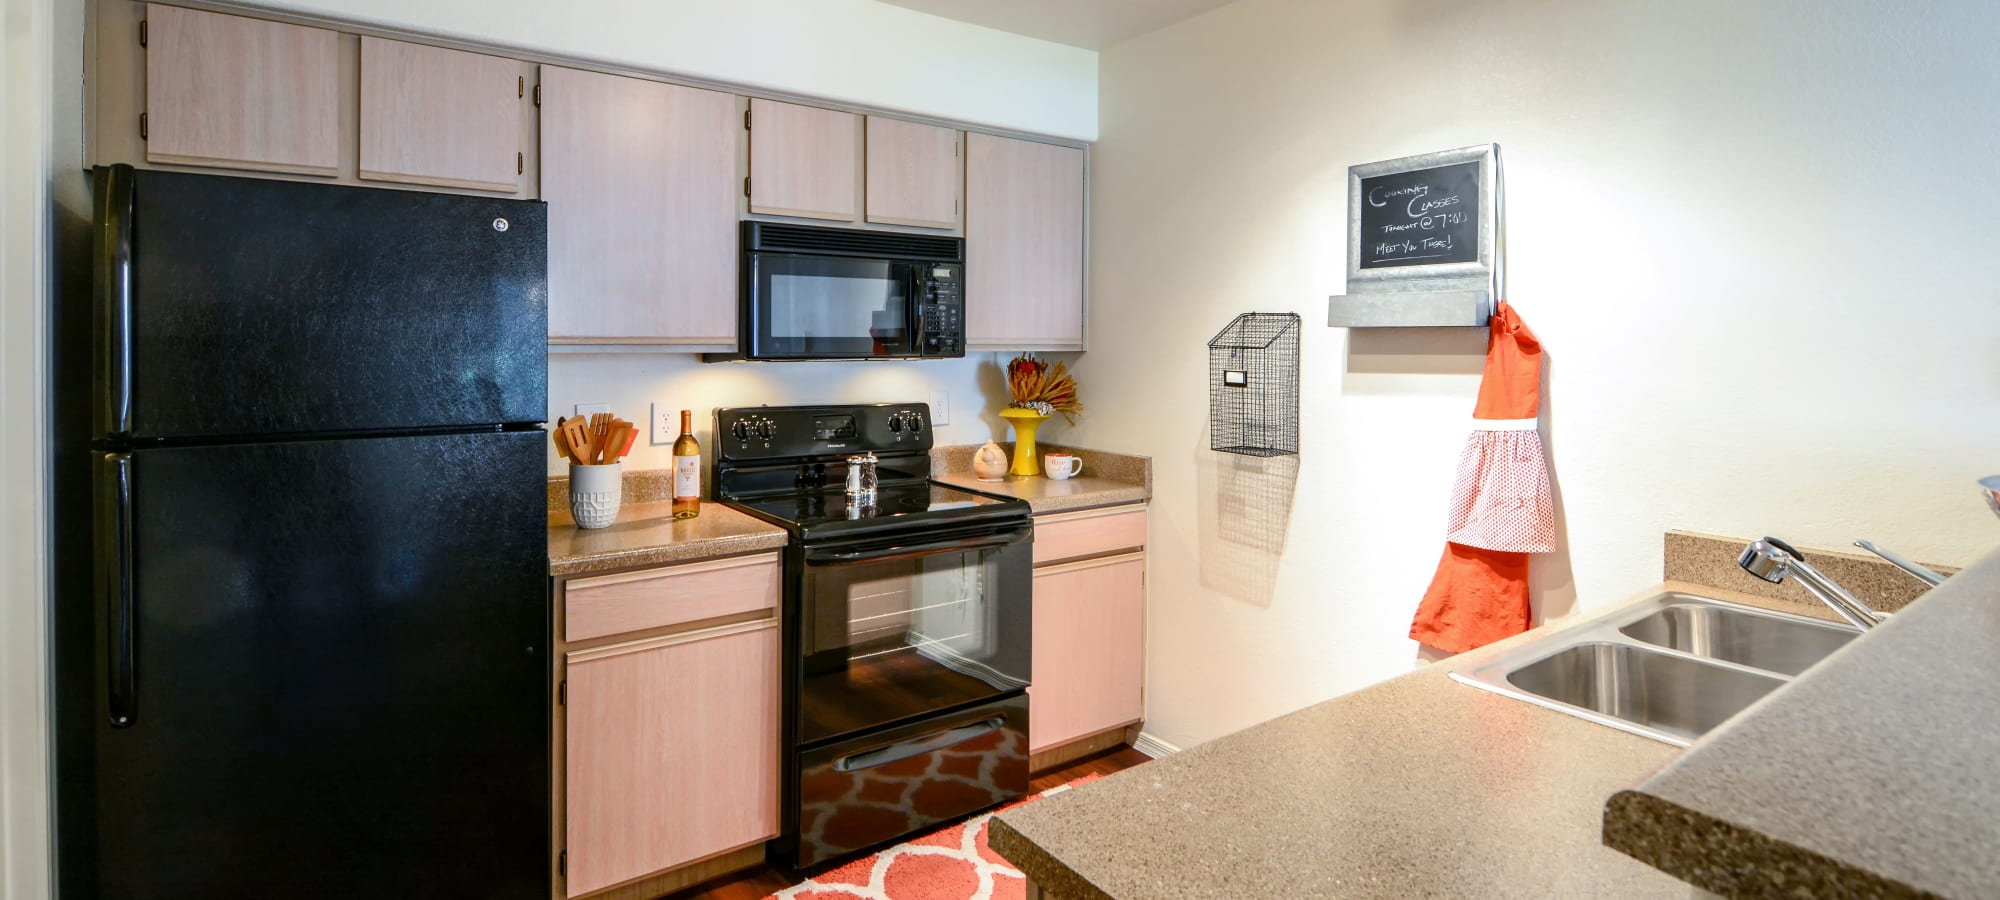 Kitchen with orange hand towel at The Palms on Scottsdale in Tempe, Arizona